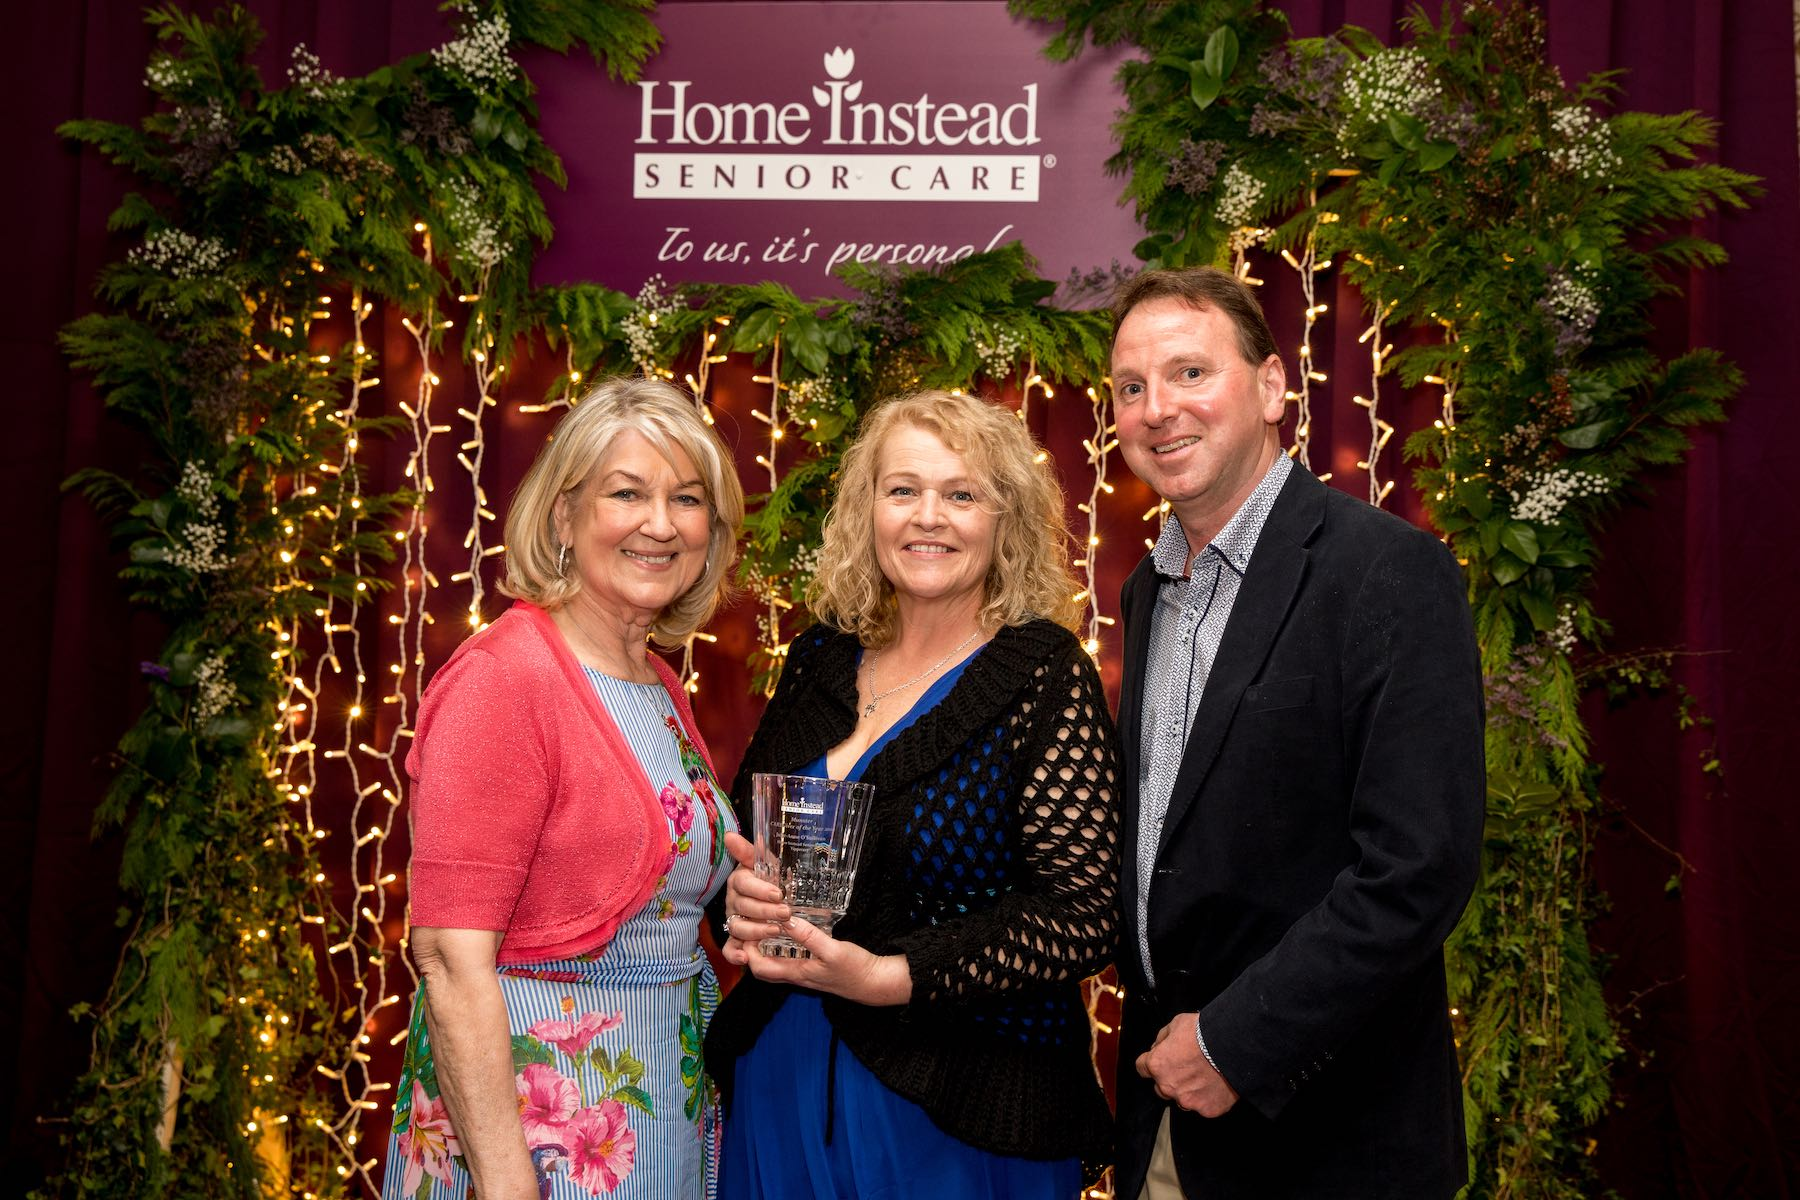 L-R: Home Instead Brand Ambassador Thelma Mansfield, Munster CAREGiver of the Year Julie-Anne O'Sullivan and General Manager of Home Instead Senior Care Dermot Carberry at Home Instead's CAREGiver of the Year Awards at the Royal Marine Hotel in Dún Laoghaire, Co Dublin on Saturday May 18 2019